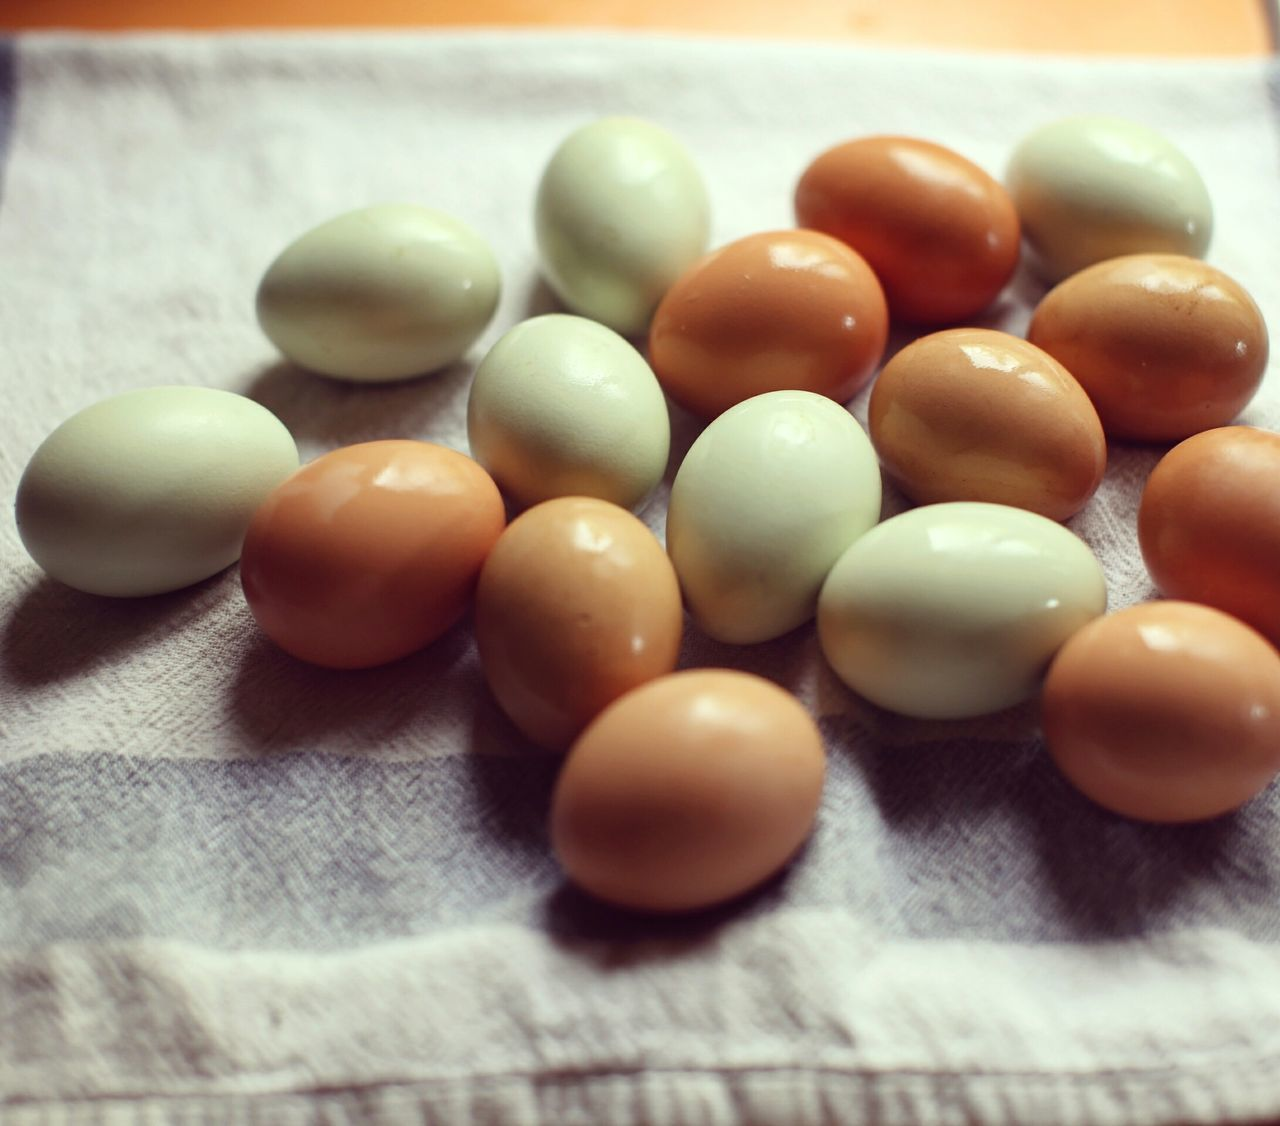 Eggs. Eggshell Egg Green Color Fresh Eggs Farm Life Poultry